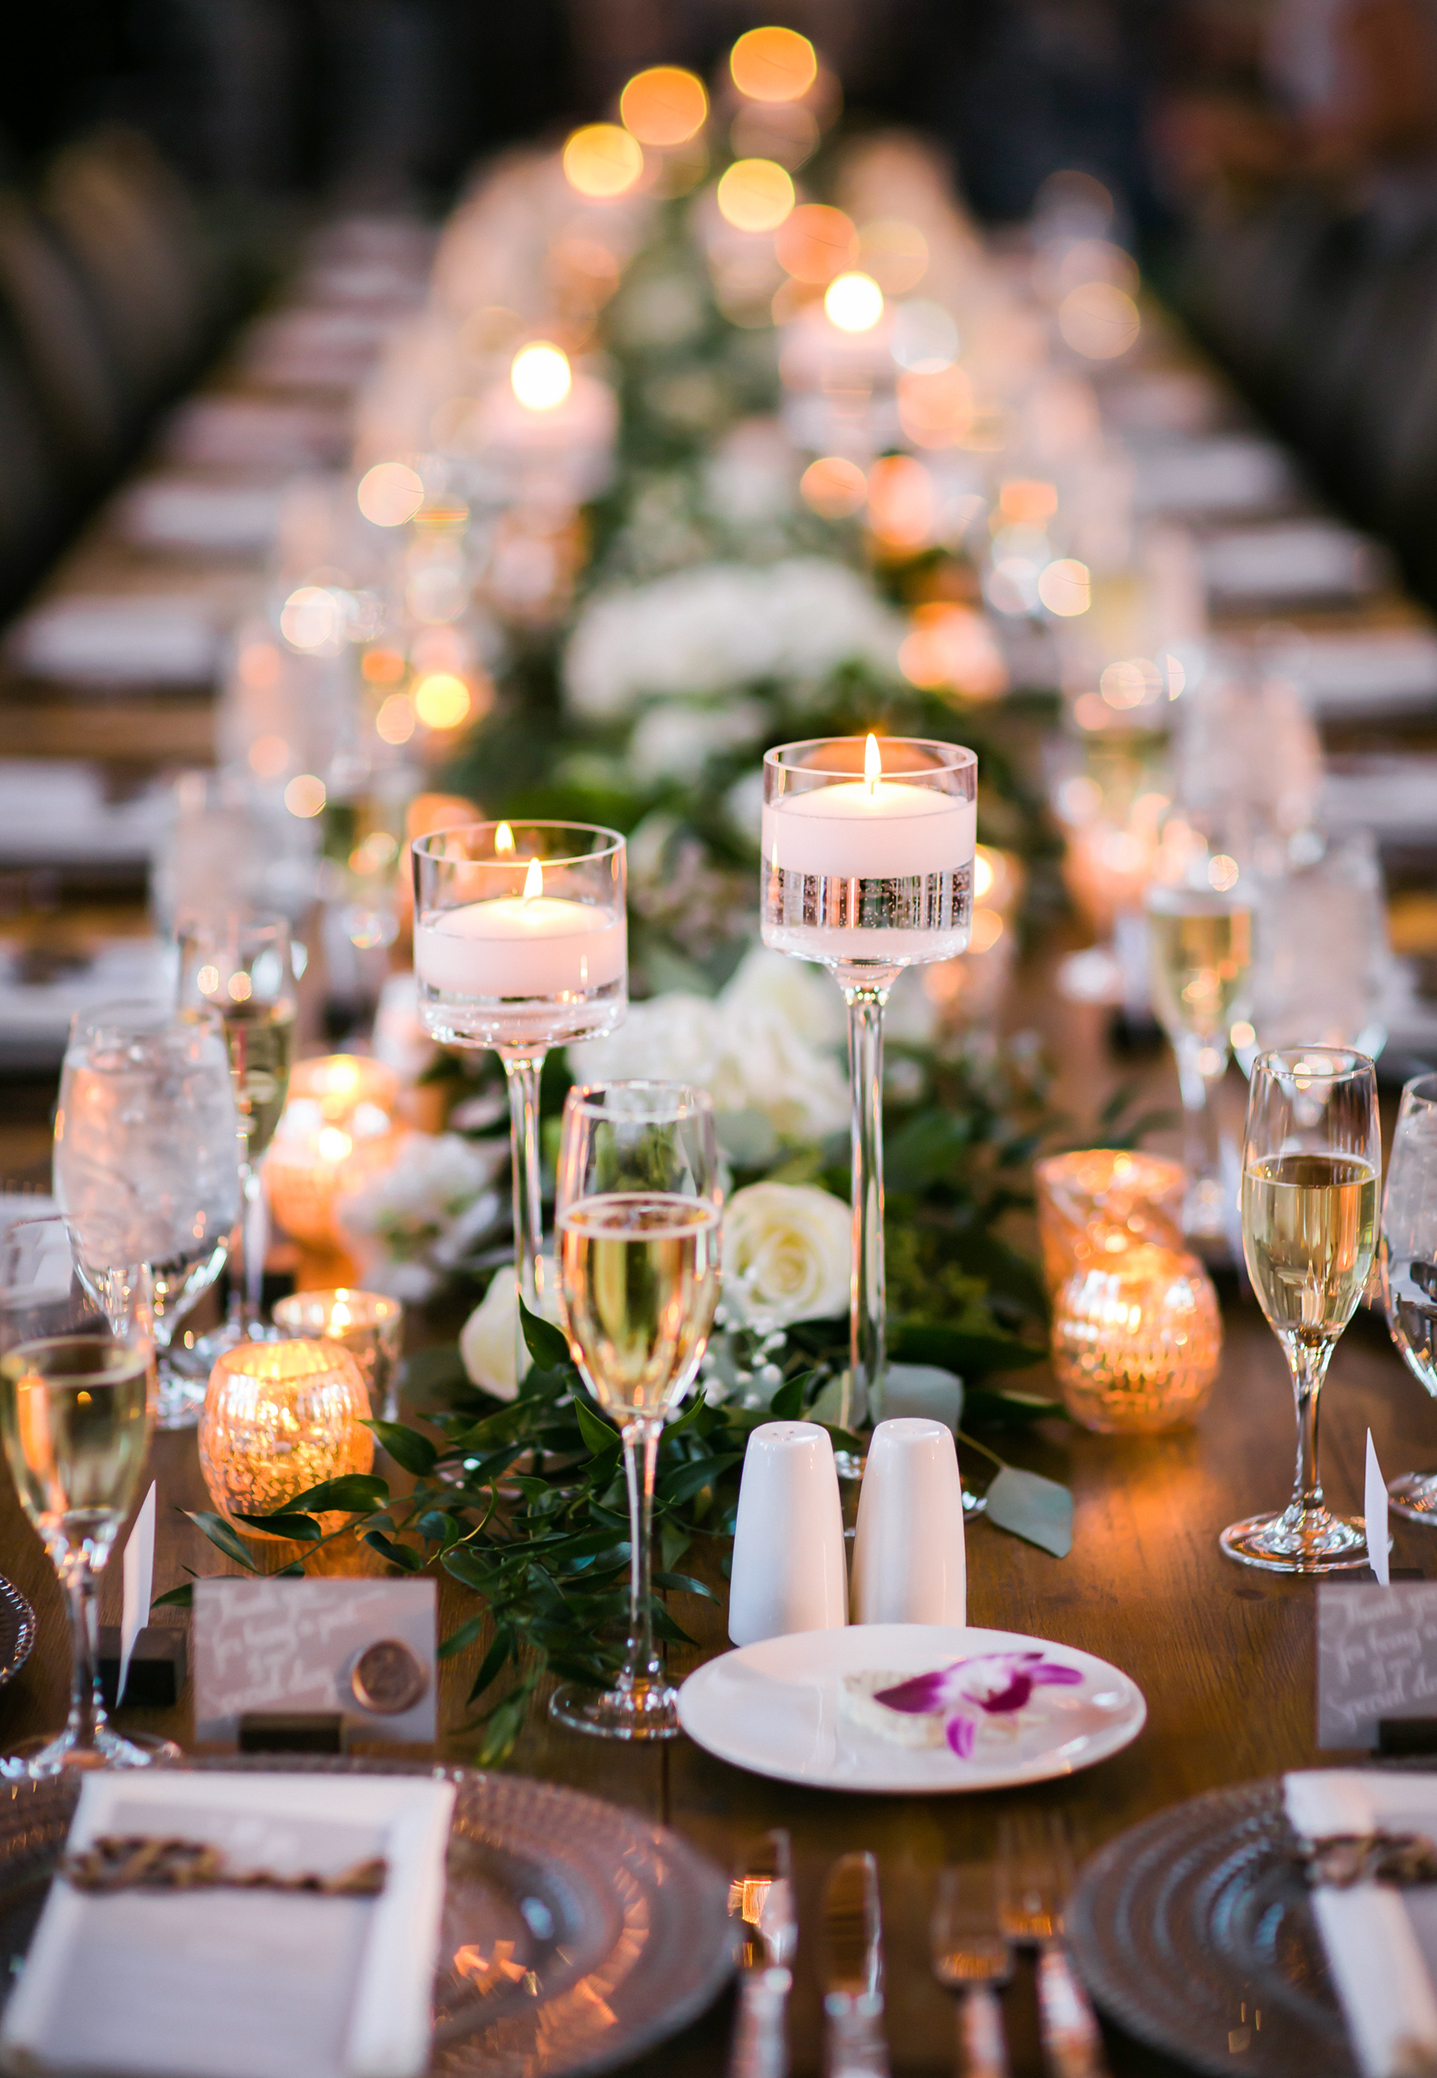 Lovely green garlands with white fresh spring flowers and dozens of candle votives and floating candle light on the head table for winter wedding decor.